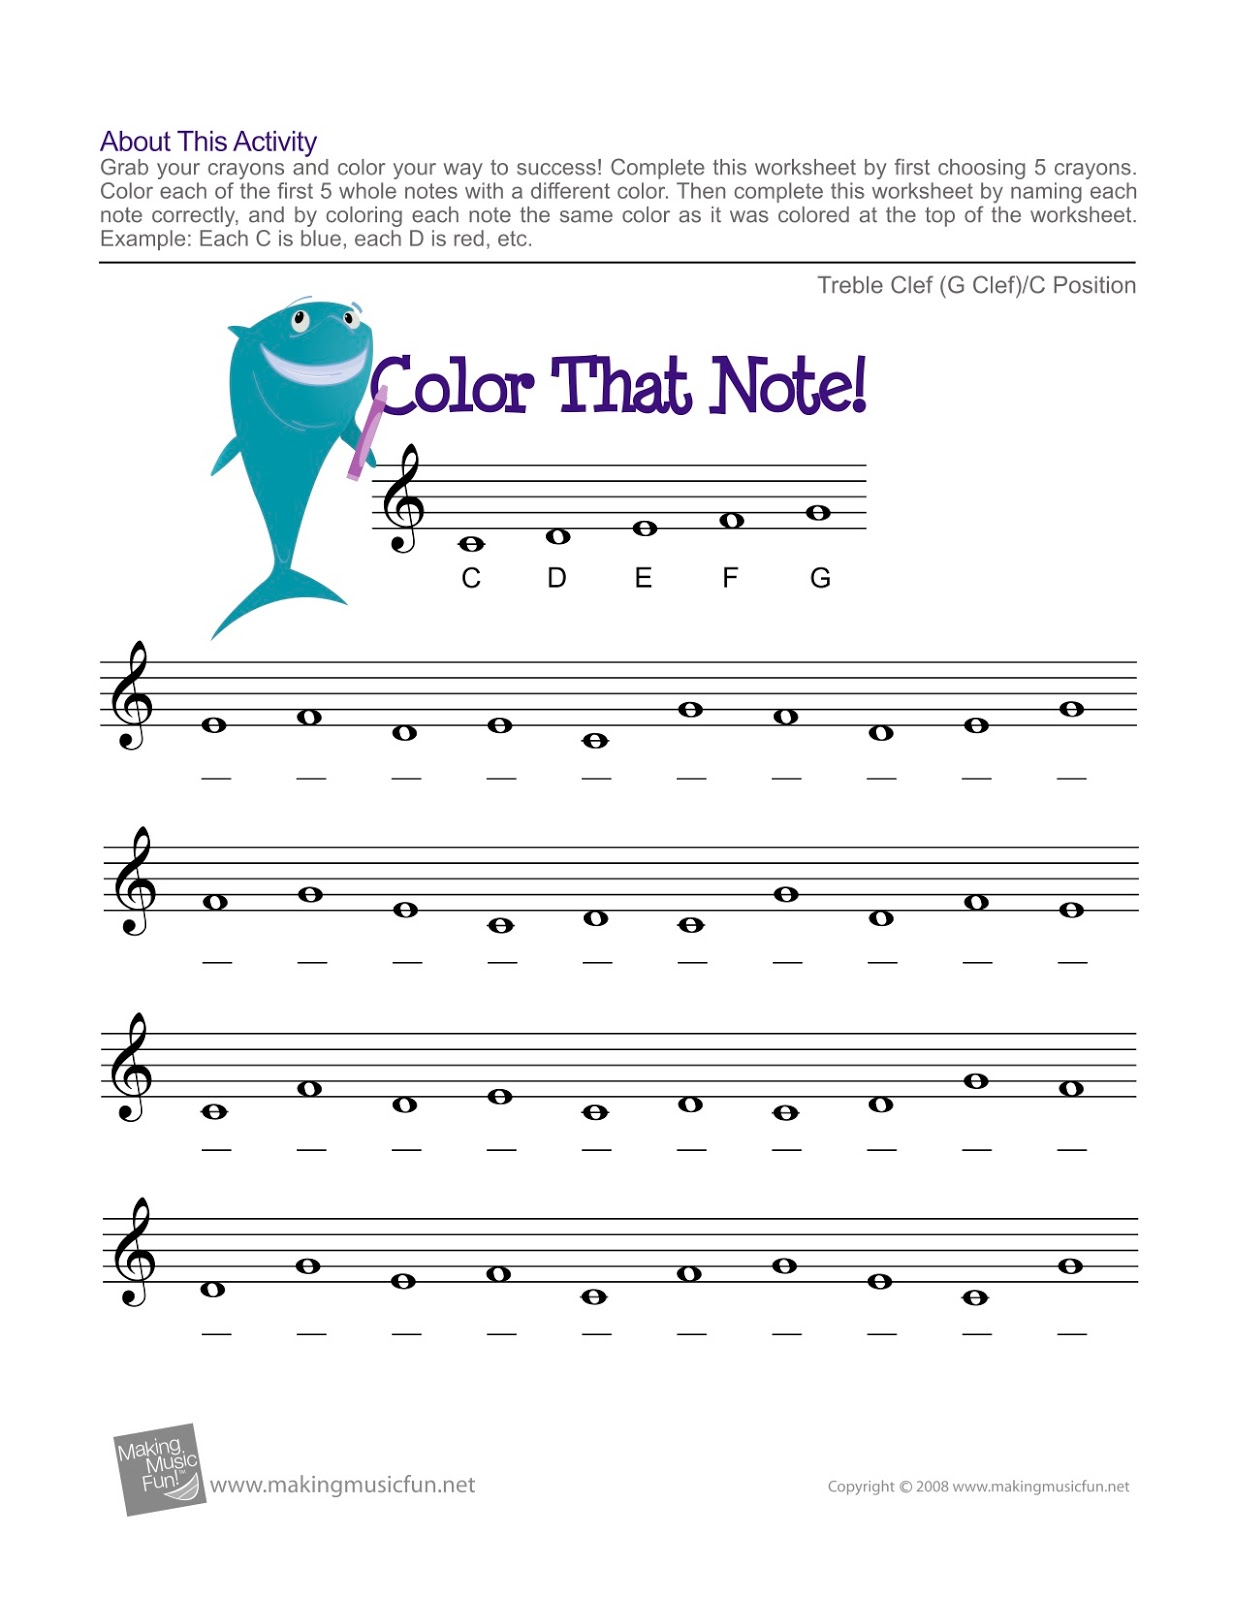 Harris Invictus Music Blog: Videos and worksheets for ...